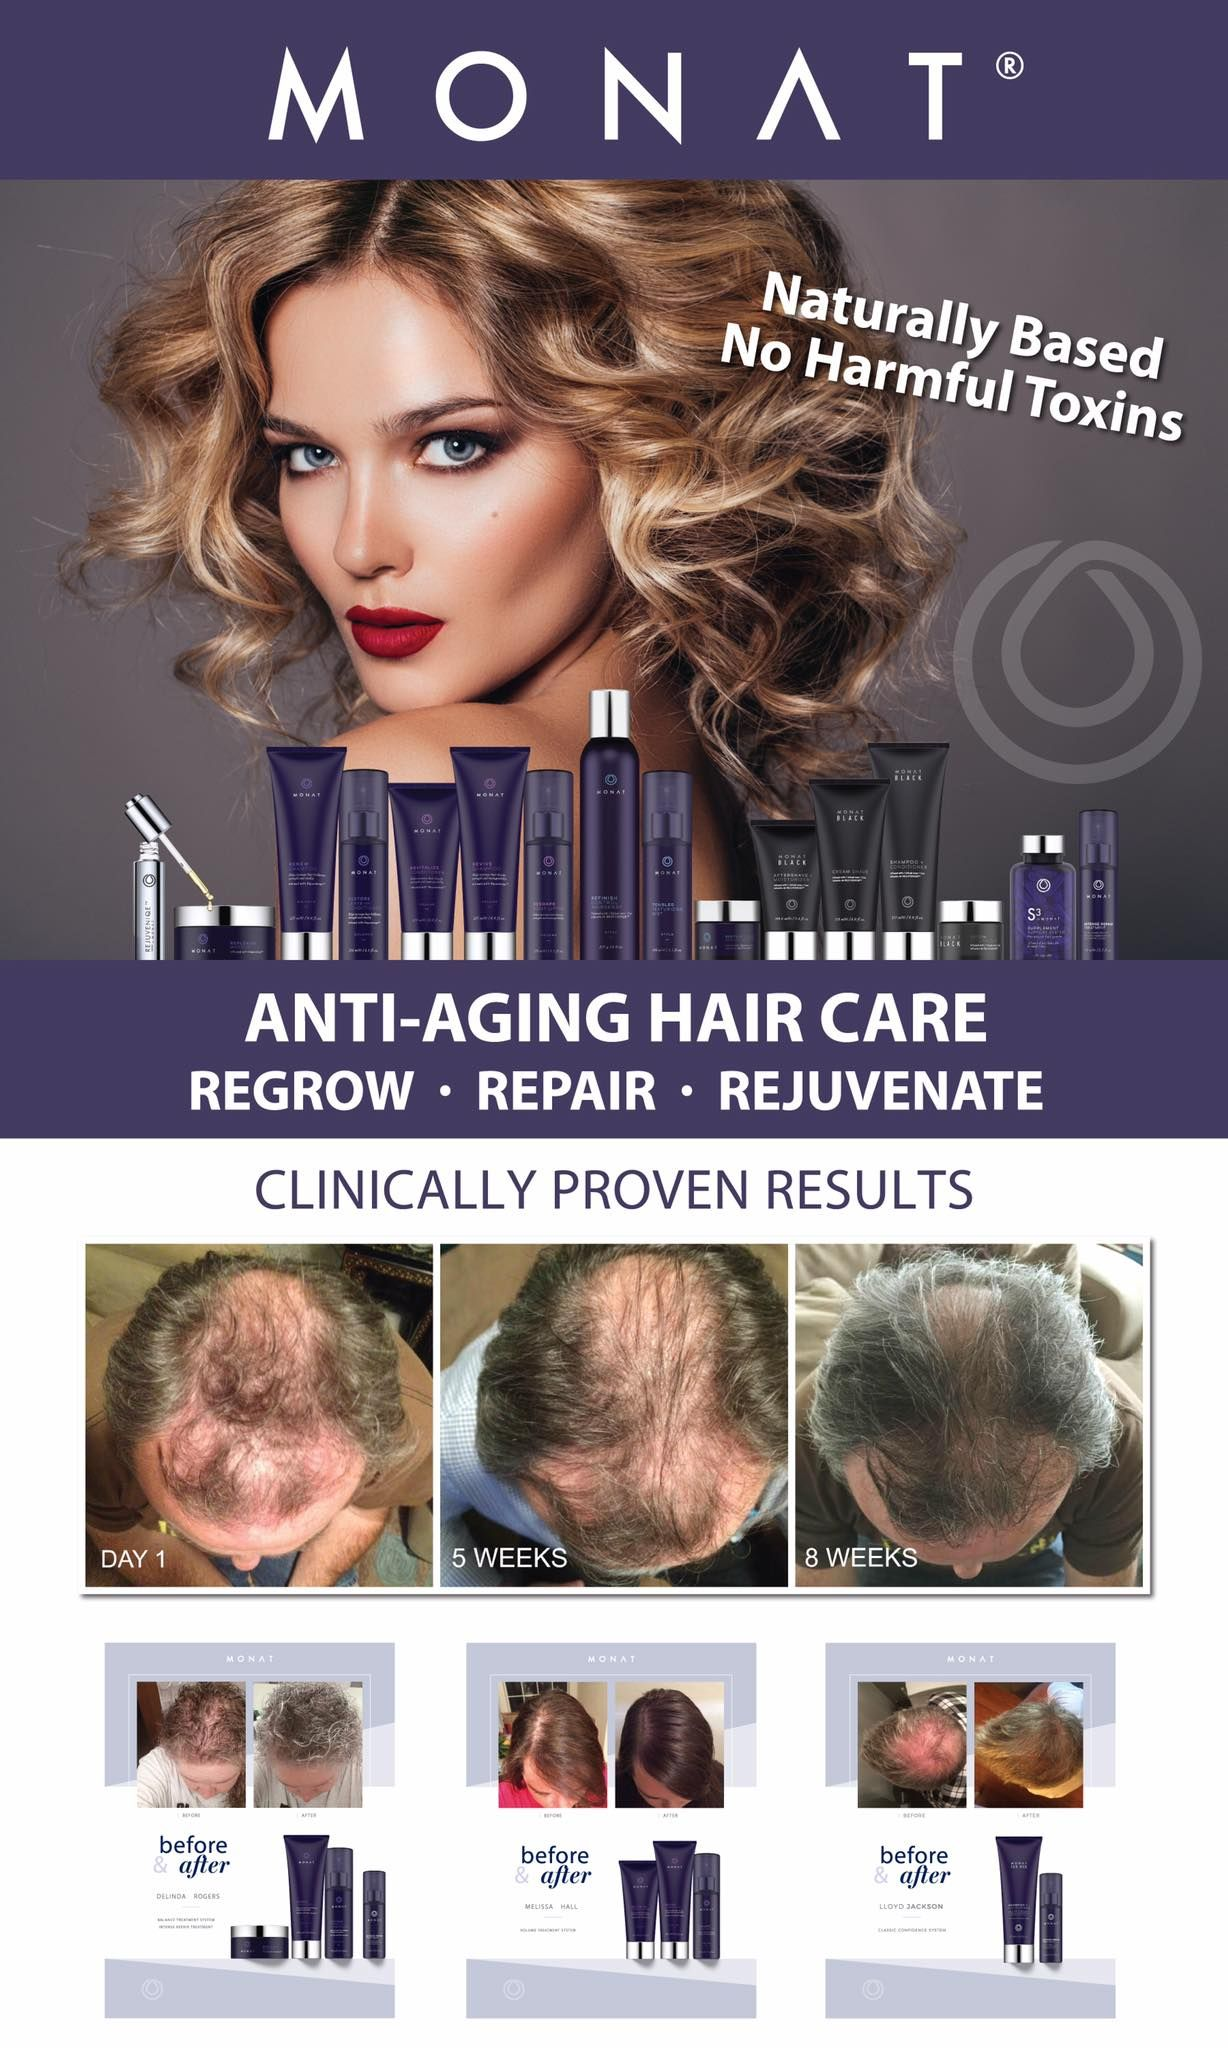 Monat offers naturally based shampoo, conditioner and many